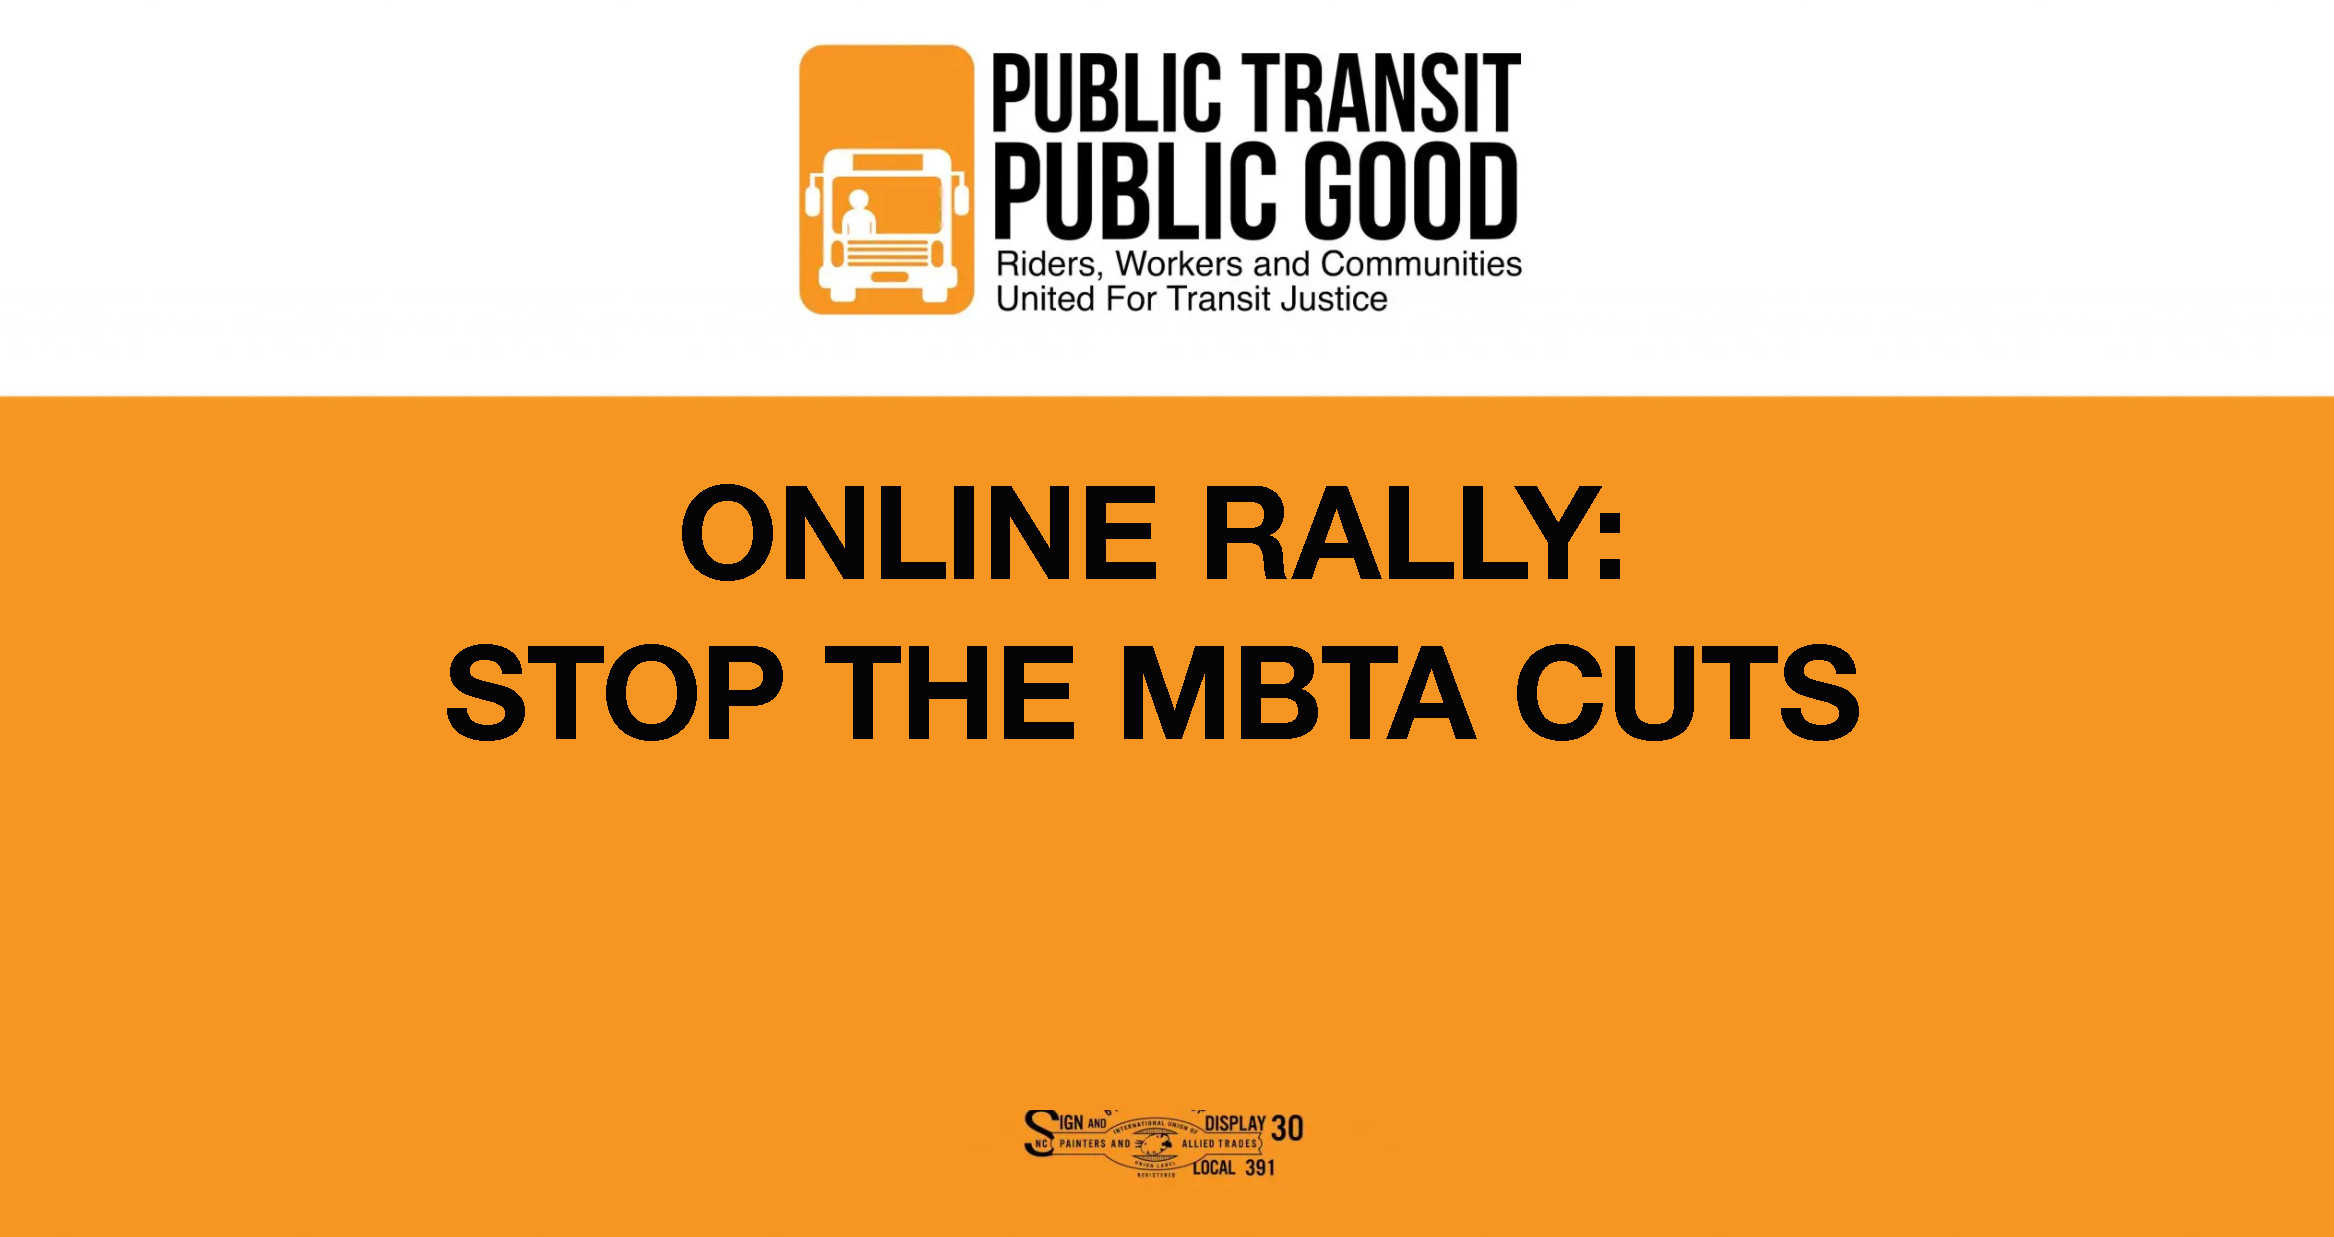 ONLINE RALLY: STOP THE MBTA CUTS